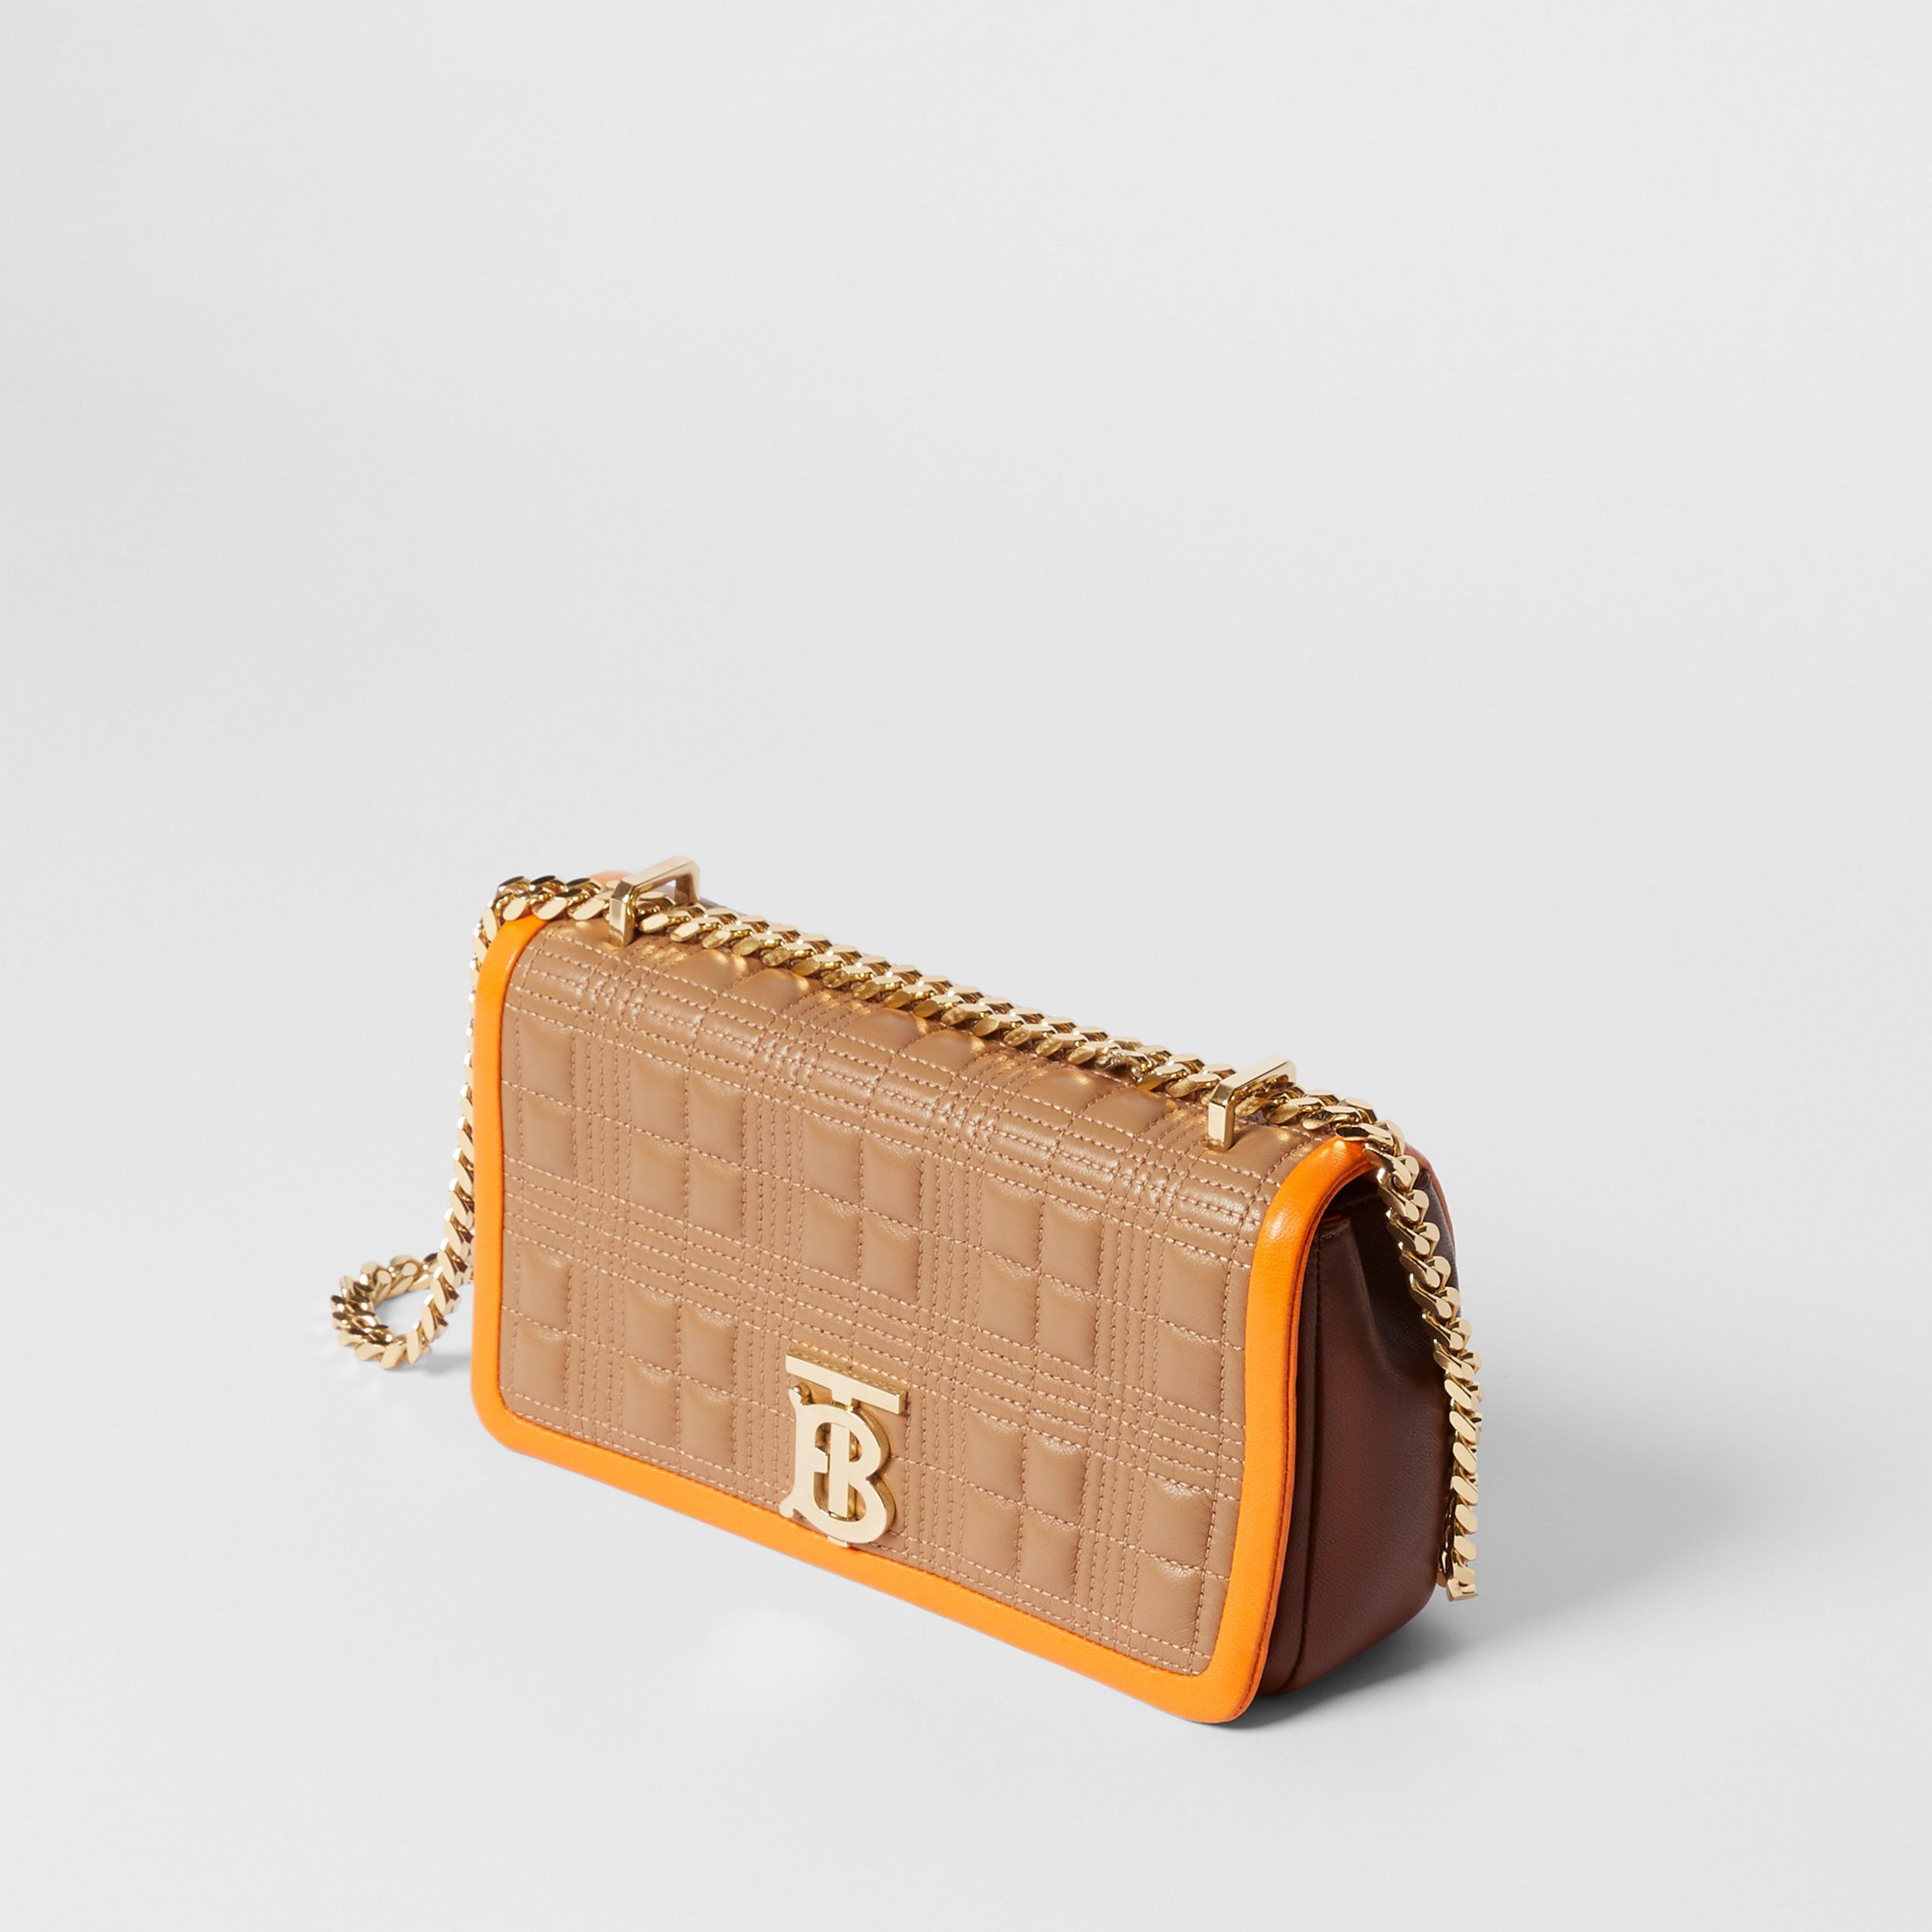 Small Quilted Tri-tone Lambskin Lola Bag in Camel/bright Orange - Women | Burberry - 4